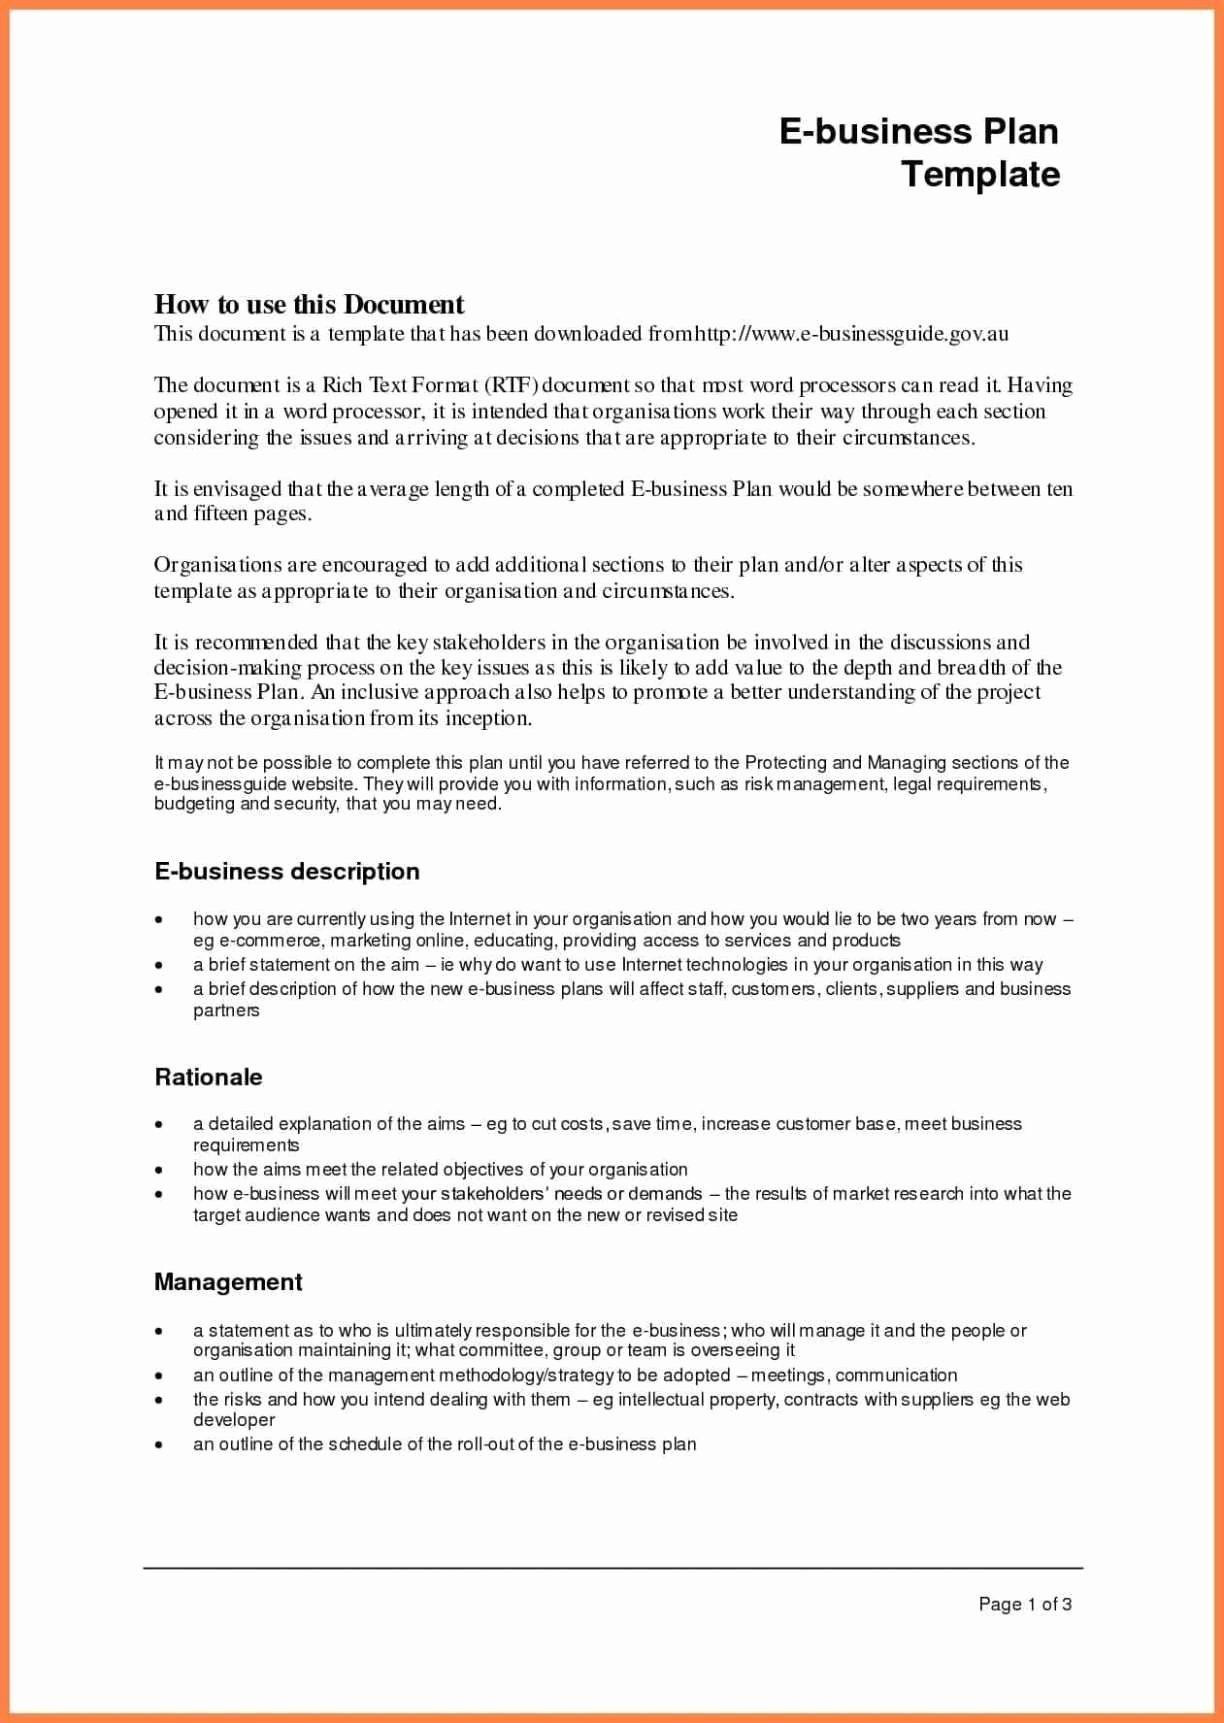 3 Quality Requirements Gathering Templates With Images